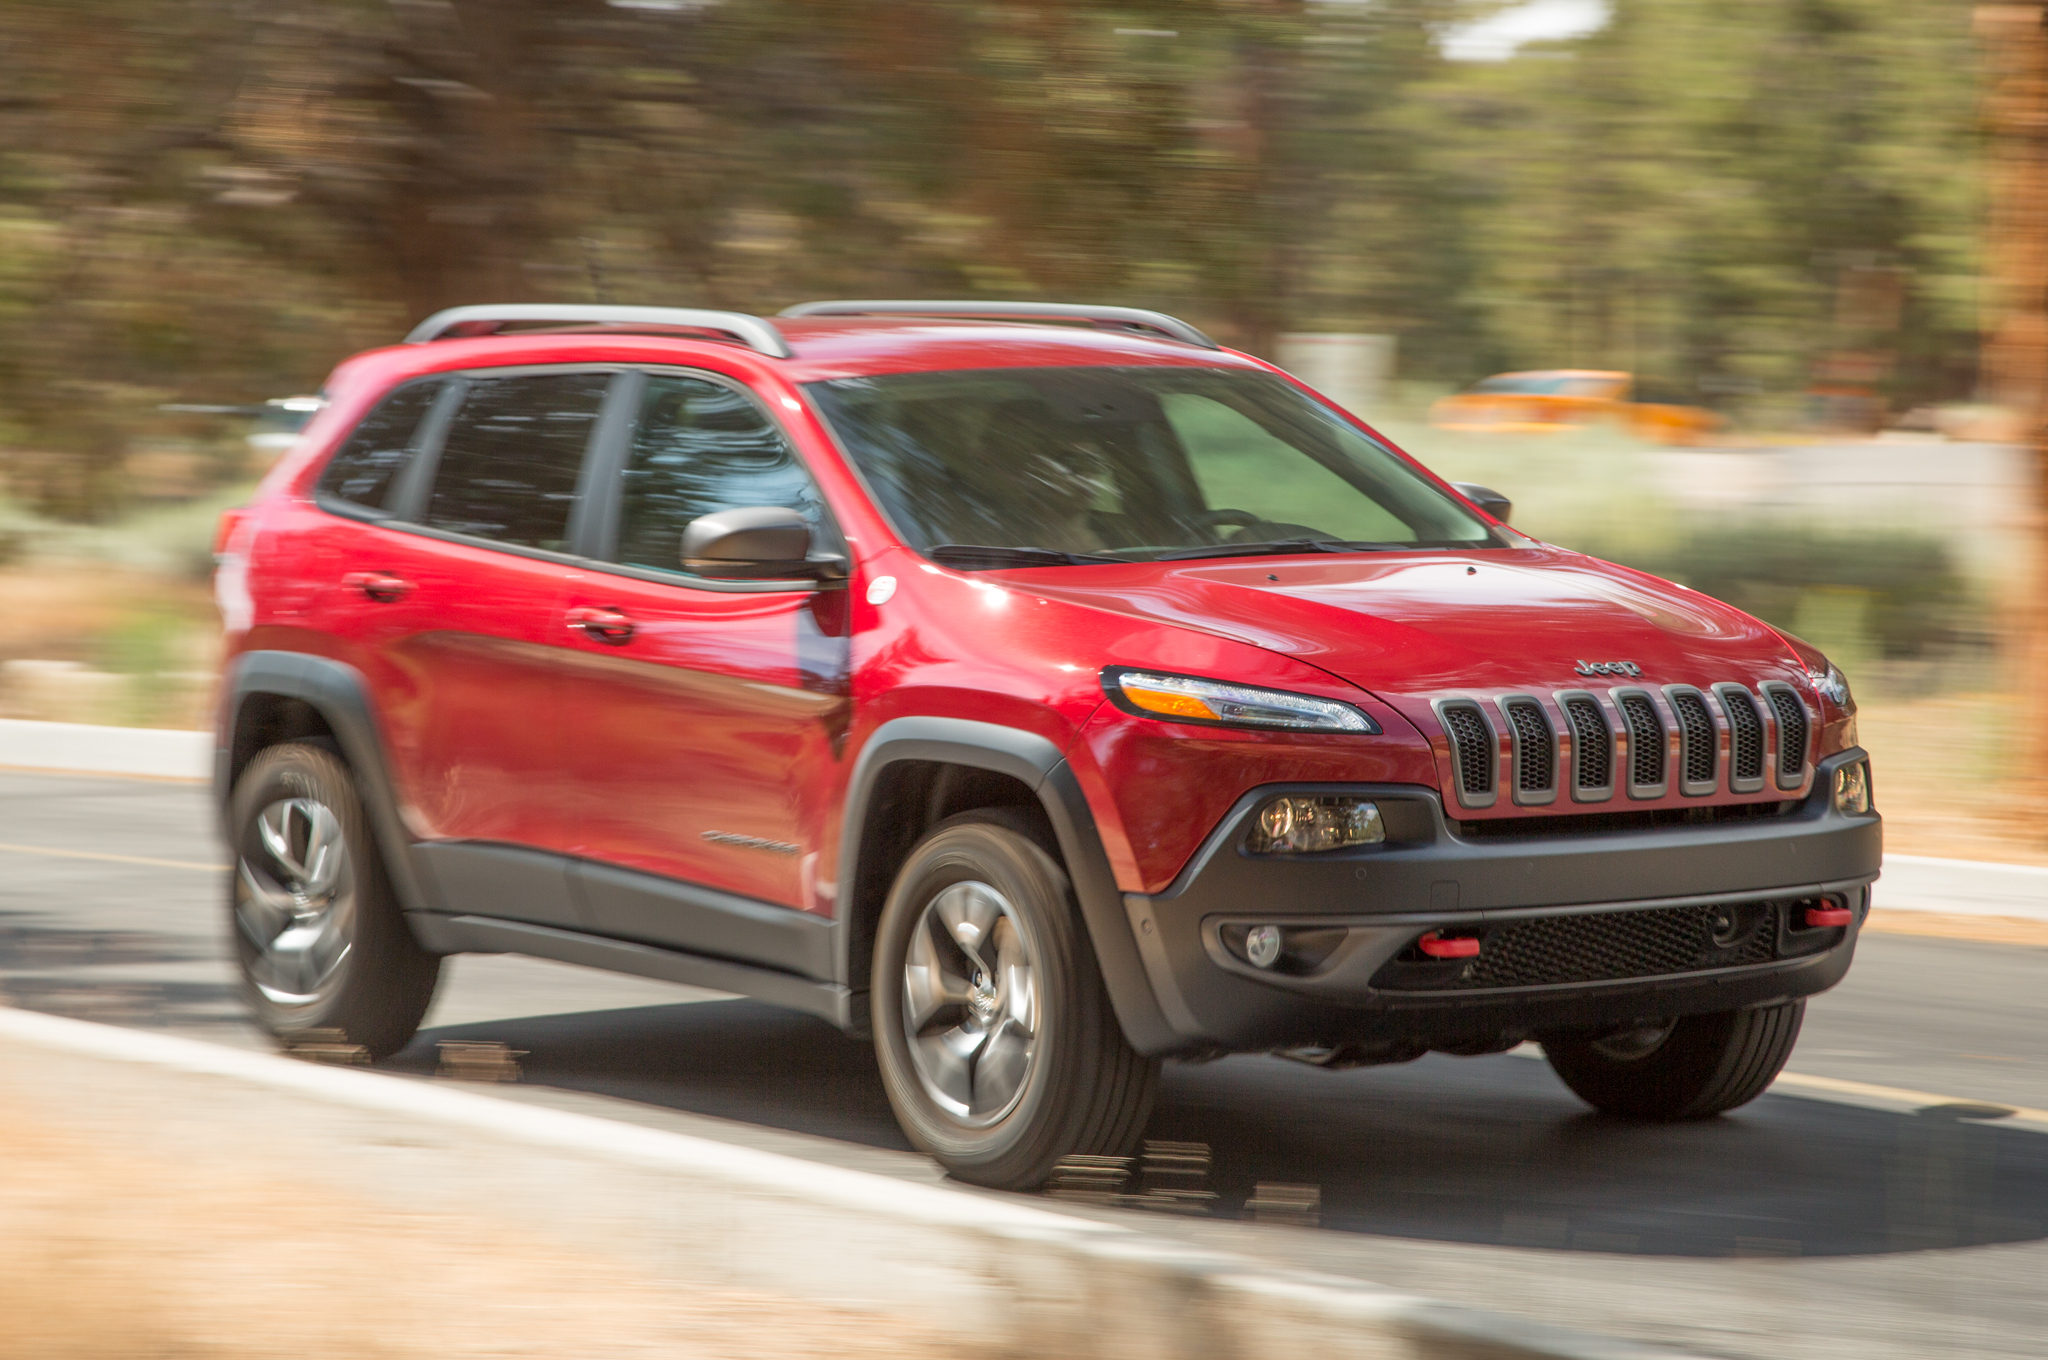 2014 Jeep Cherokee Trailhawk 4X4 Arrival